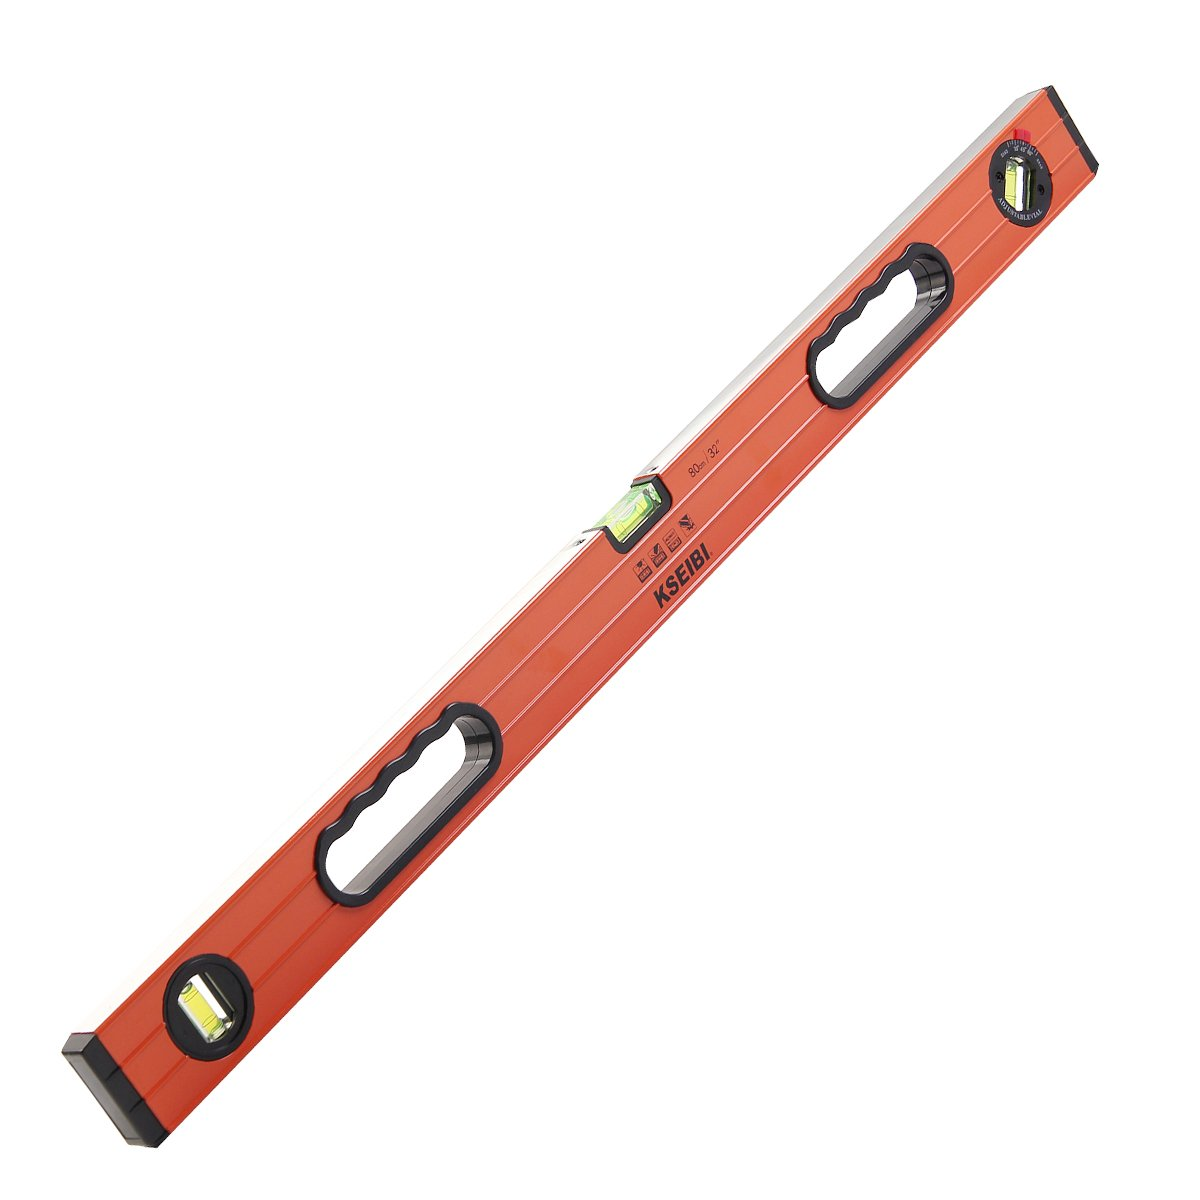 KSEIBI 301155 Measuring Spirit level 32 Inch With Two Handle Adjustable Vial